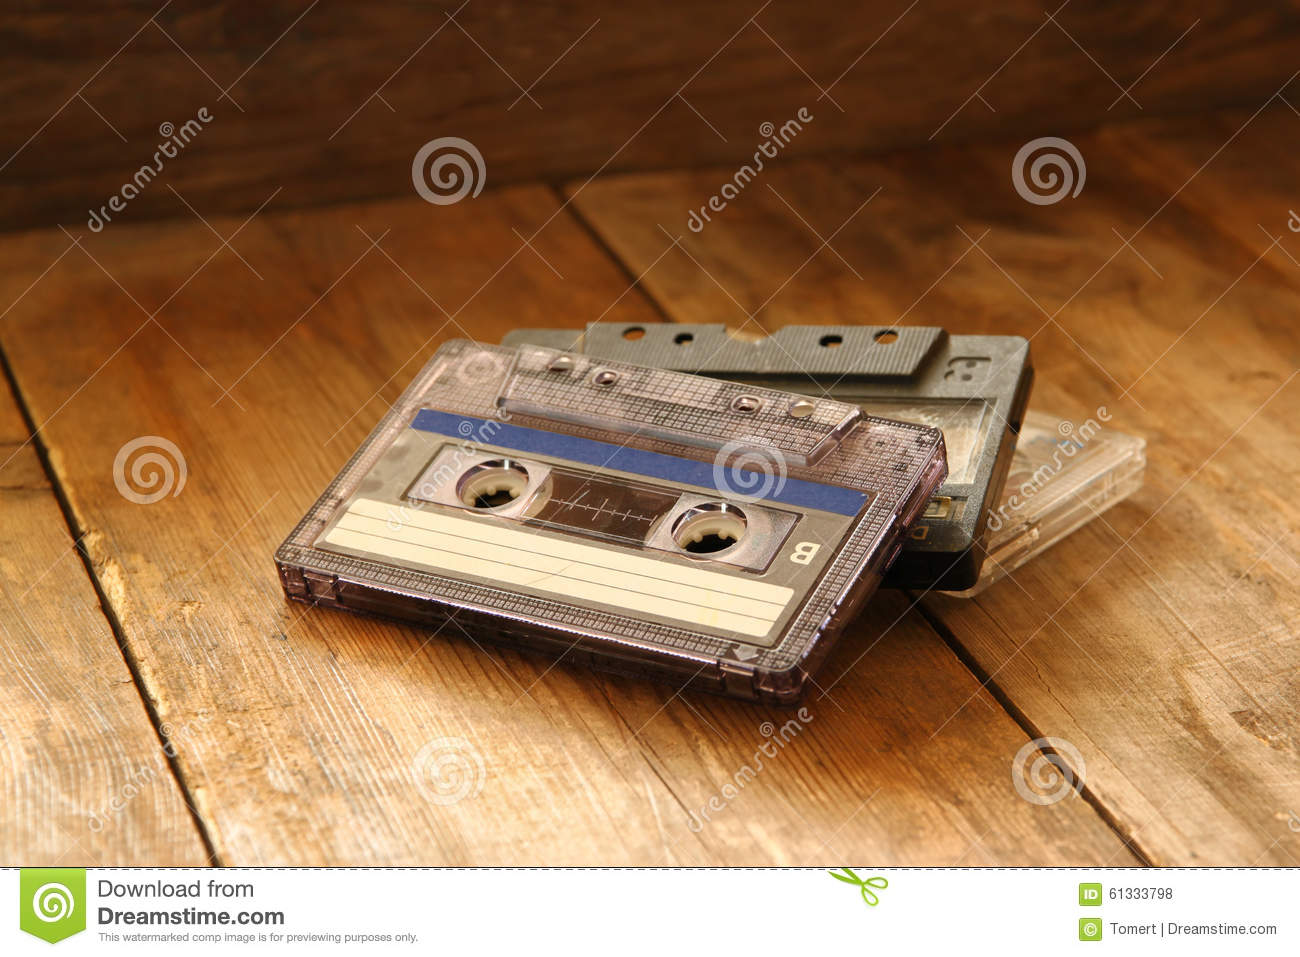 Cassette Tape Over Wooden Table Image Is Instagram Style Filtered